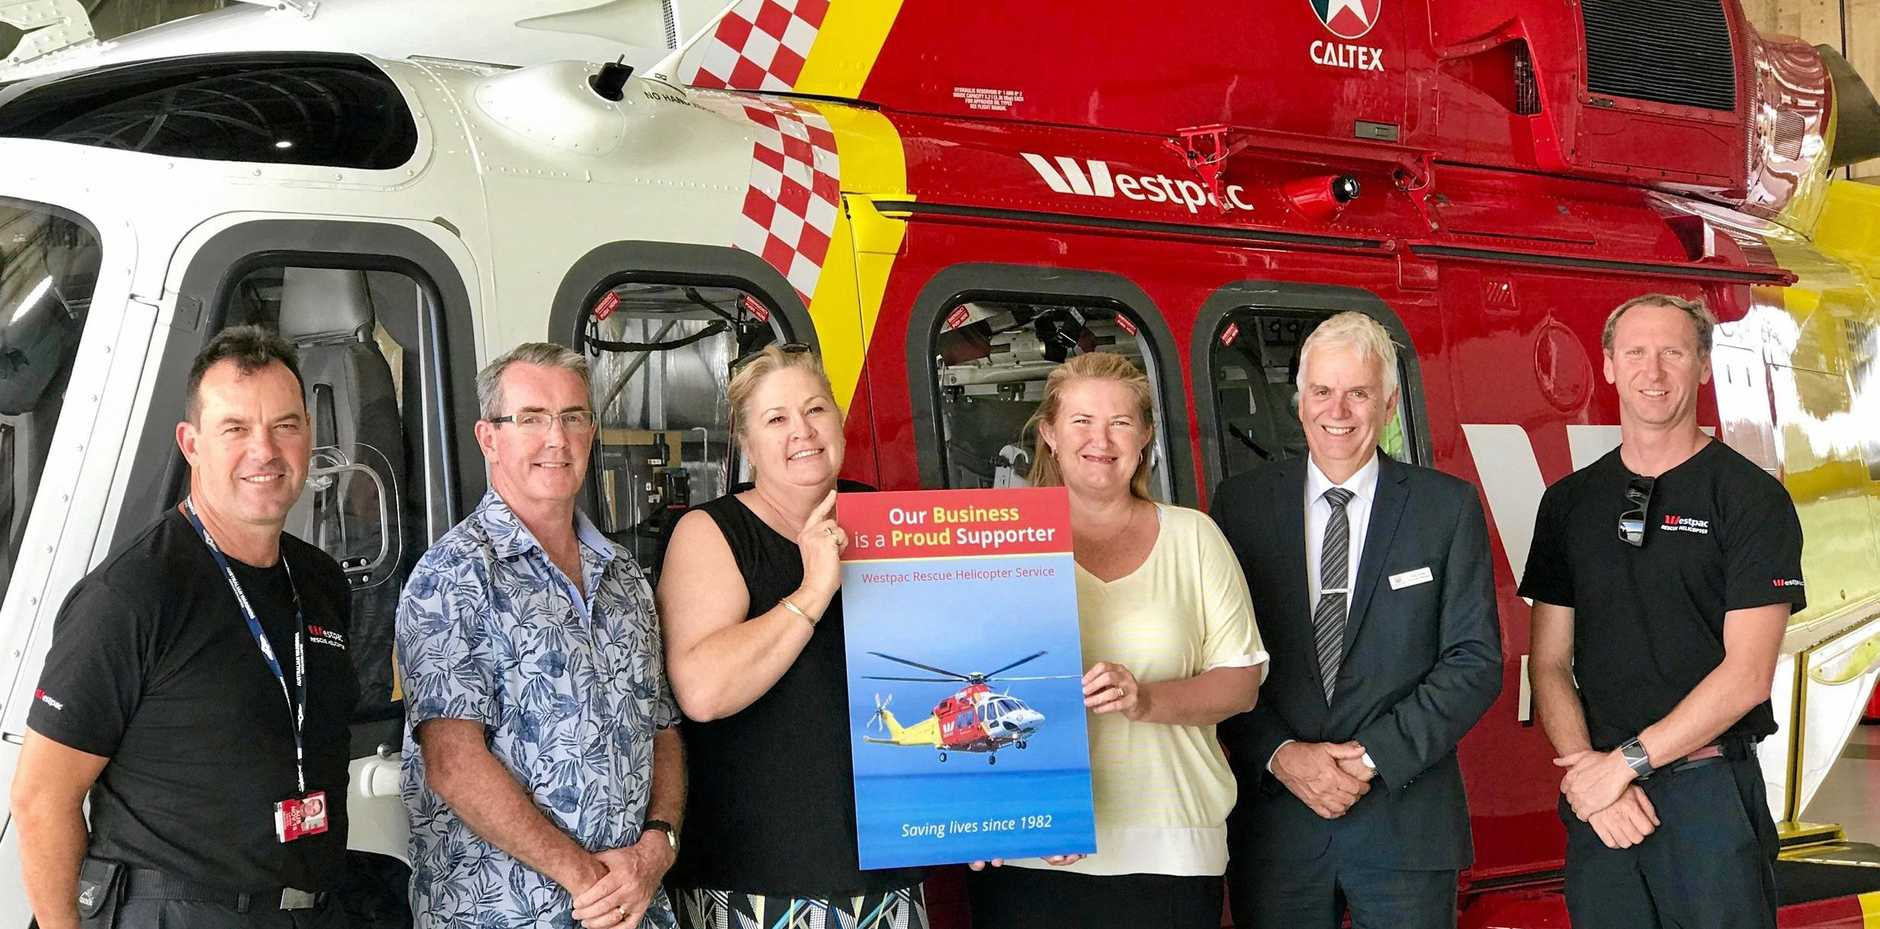 MILESTONE (L-R): Lachlan Hayes (Pilot), Glenn Jeffrey (Careers Advisor, The Rivers Secondary College, Lismore High Campus), Cheryl Graham (College Administration Officer, The Rivers Secondary College), Gaye Titcume, from Alstonville Public School, Greg Smith (Executive Principal, The Rivers Secondary College), Jimmy Keough (Aircrew Officer).